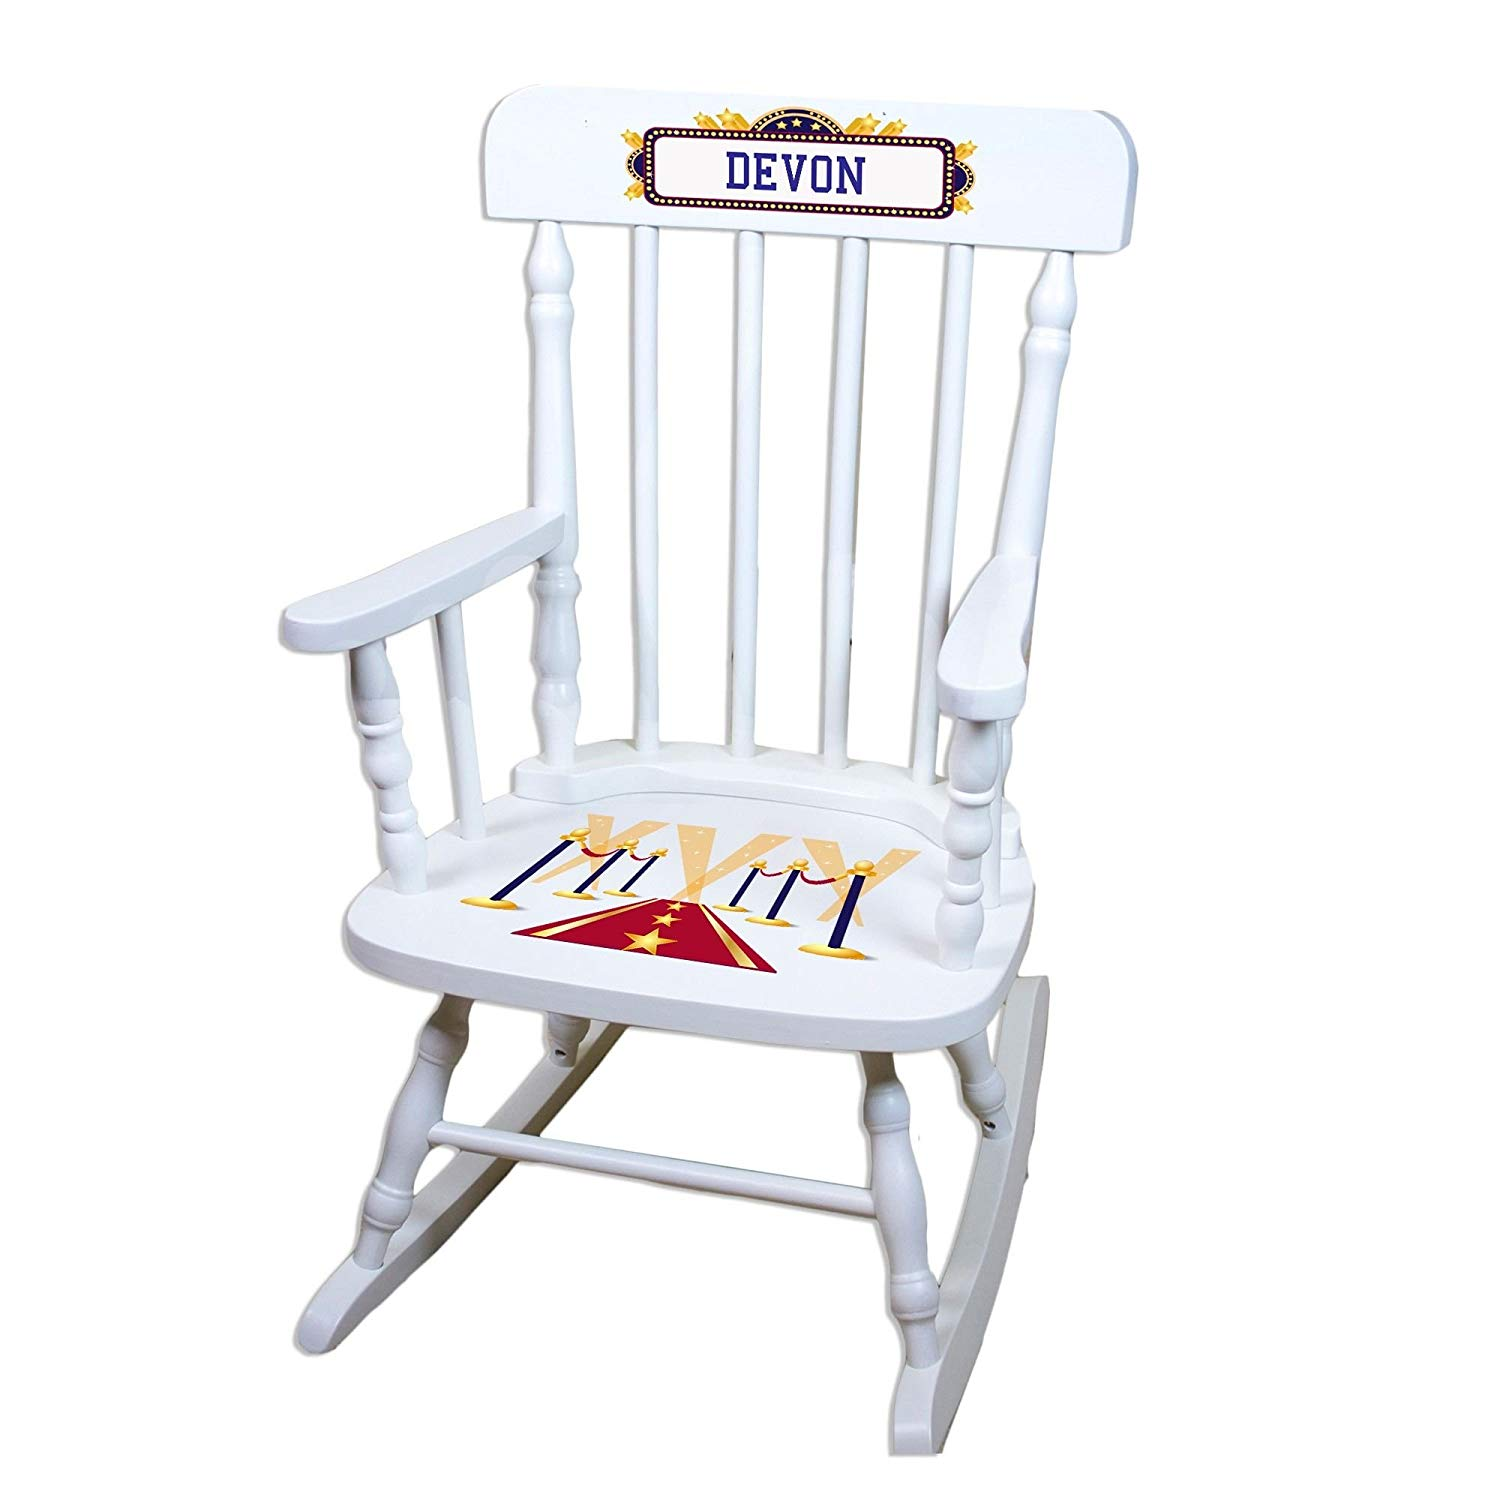 MyBambino Personalized A Star is Born blue White Wooden Childrens Rocking Chair